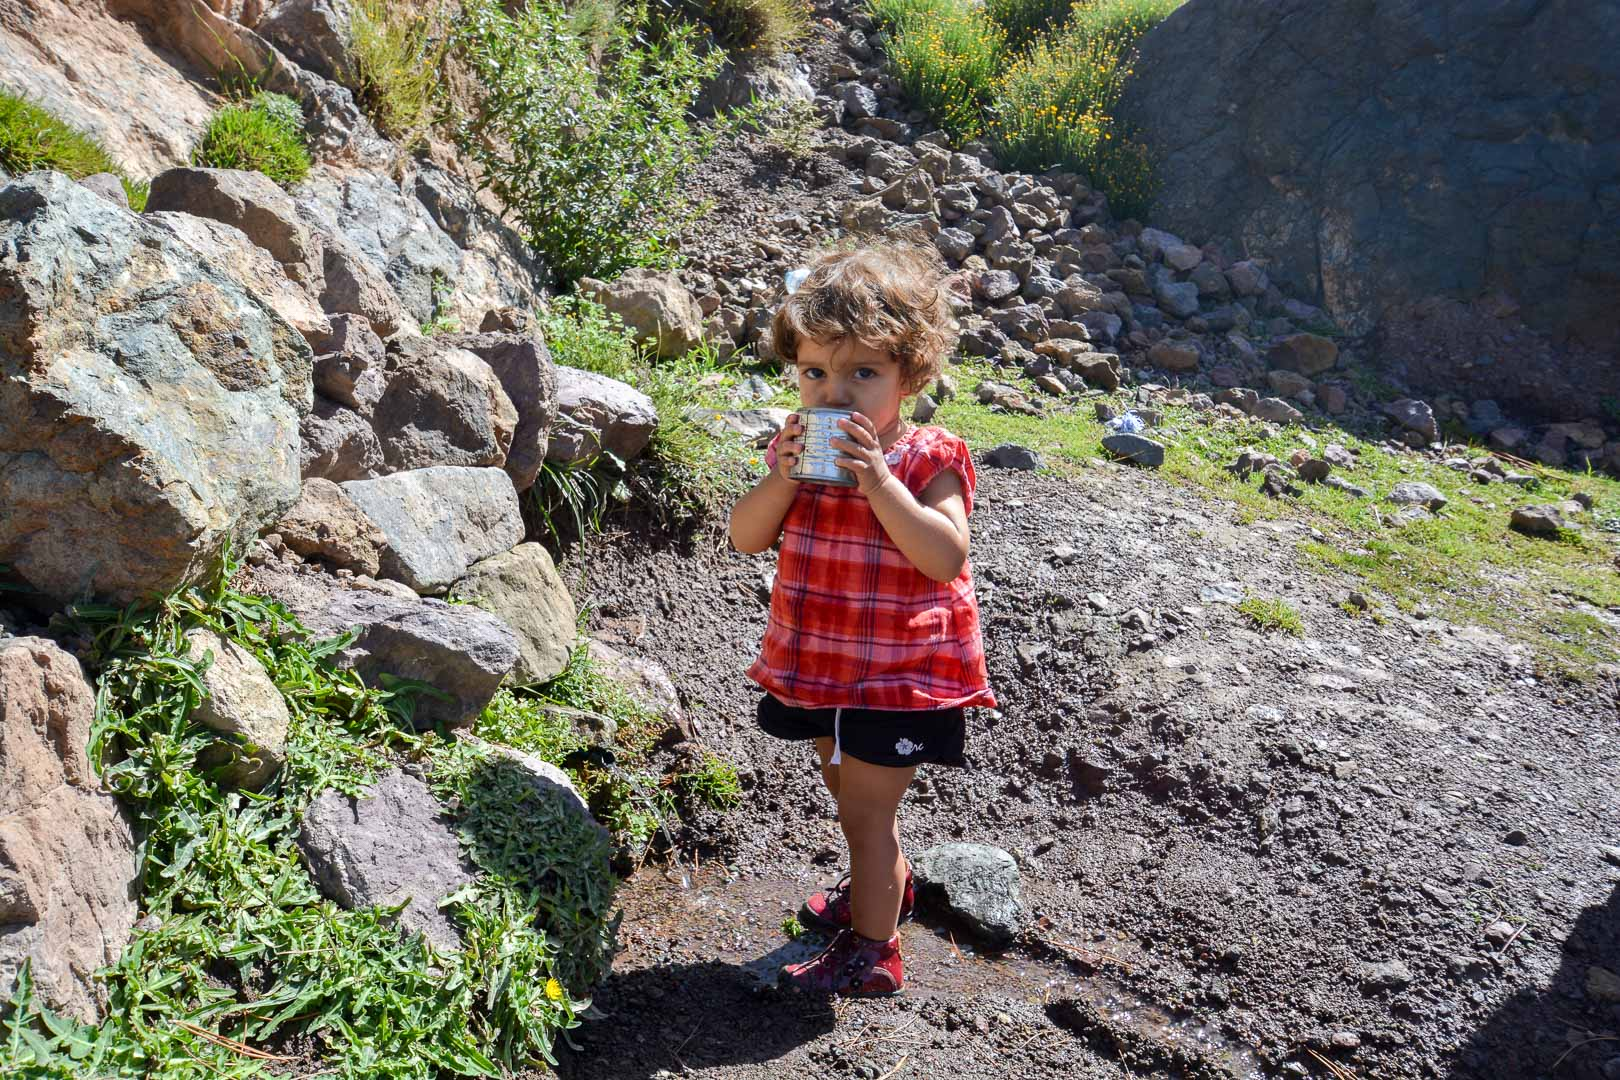 This little one was getting a drink from the mountain spring